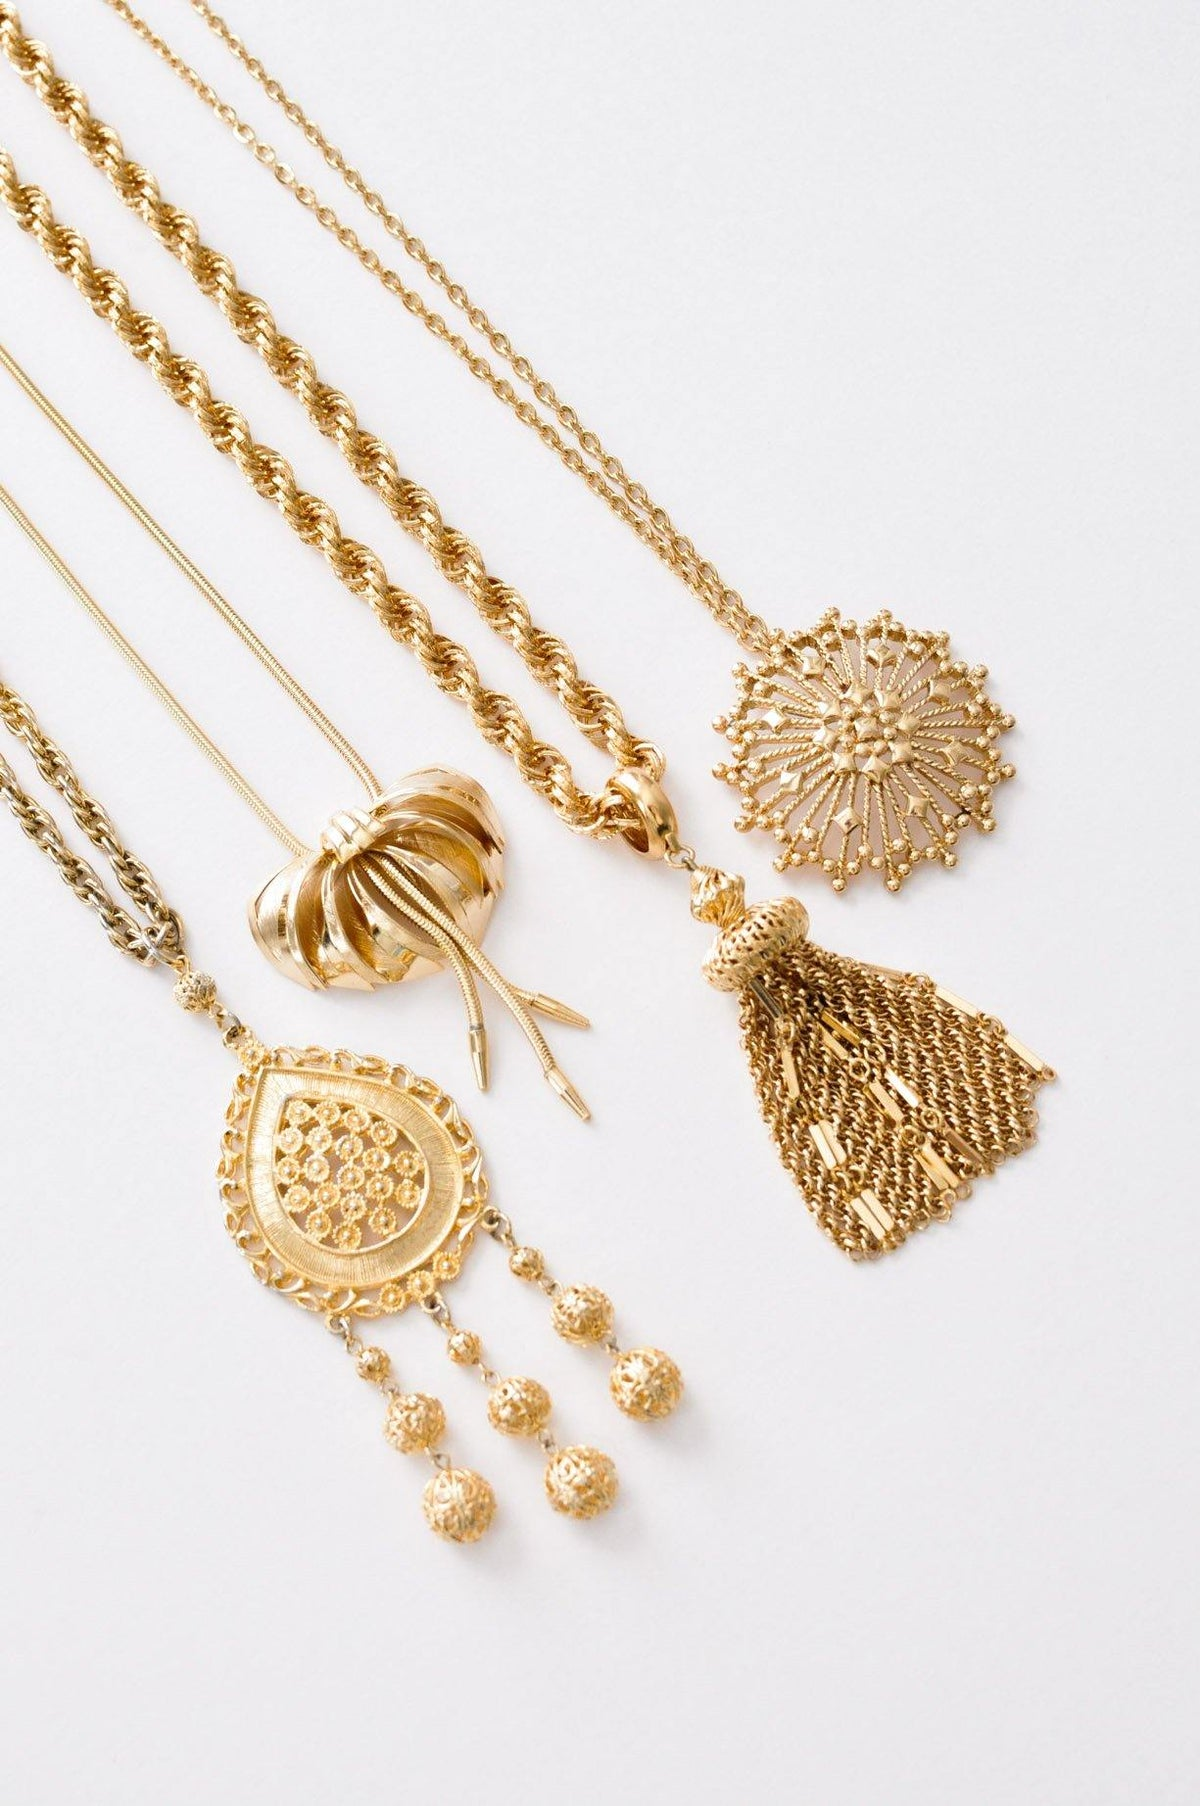 Vintage statement pendant necklaces from Sweet & Spark.